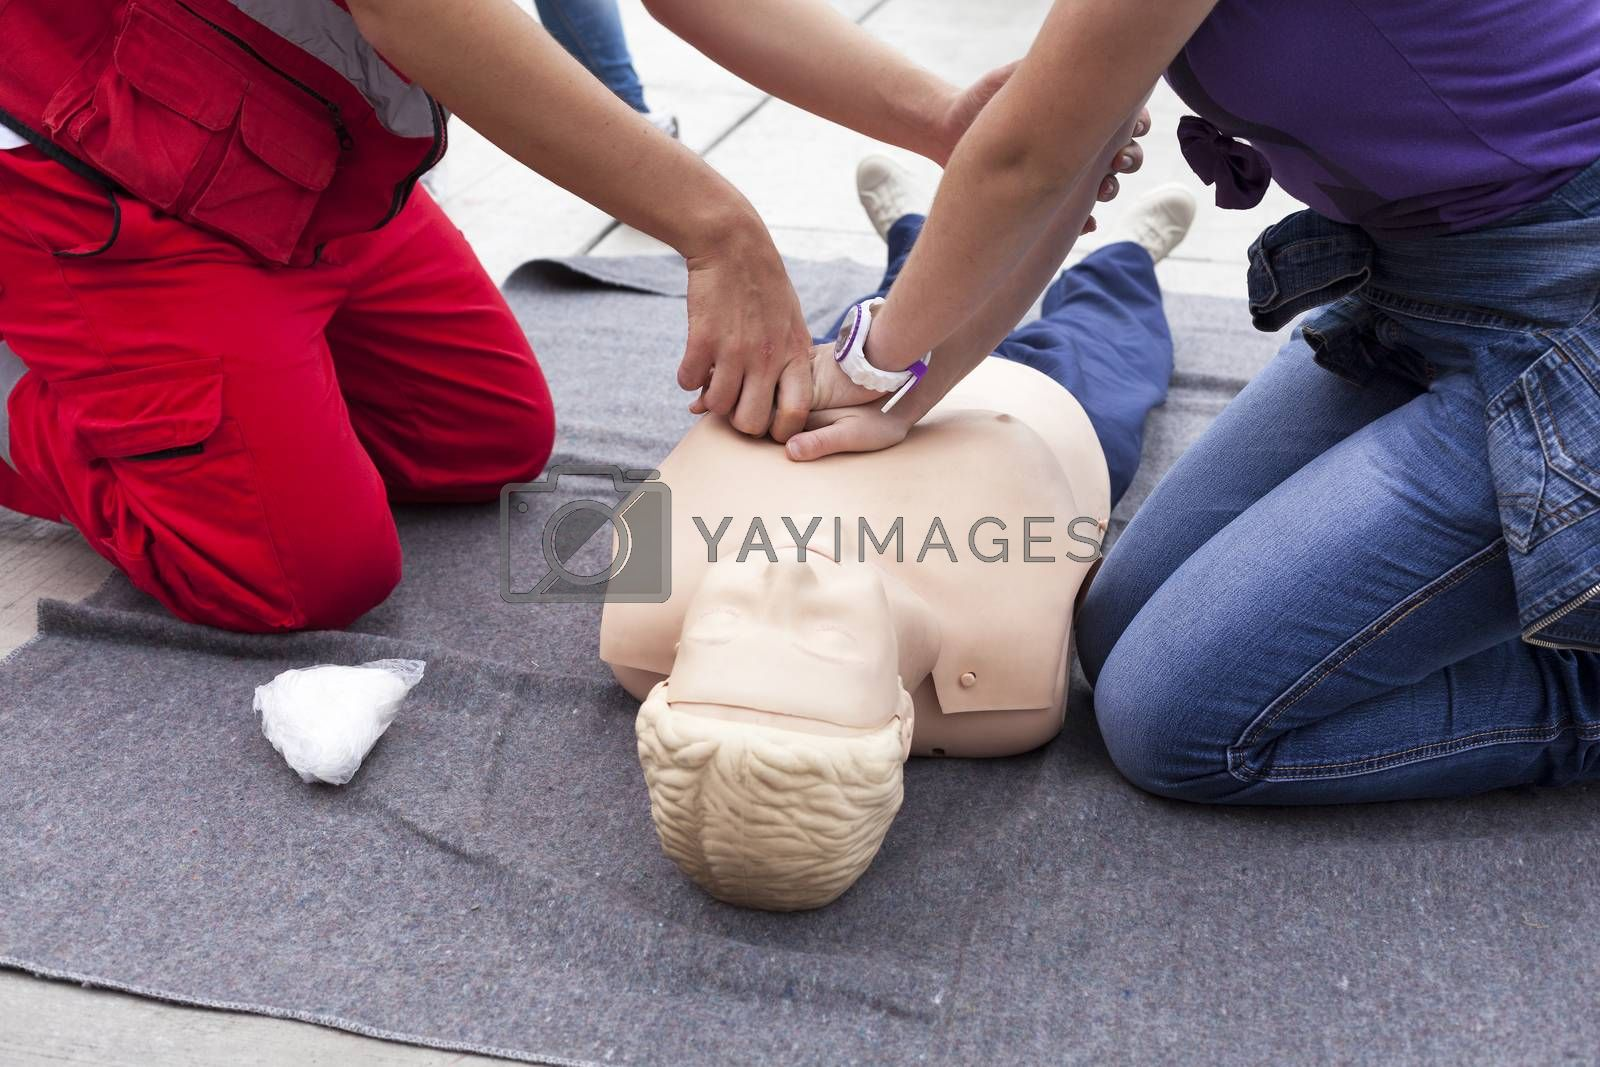 First aid training by wellphoto